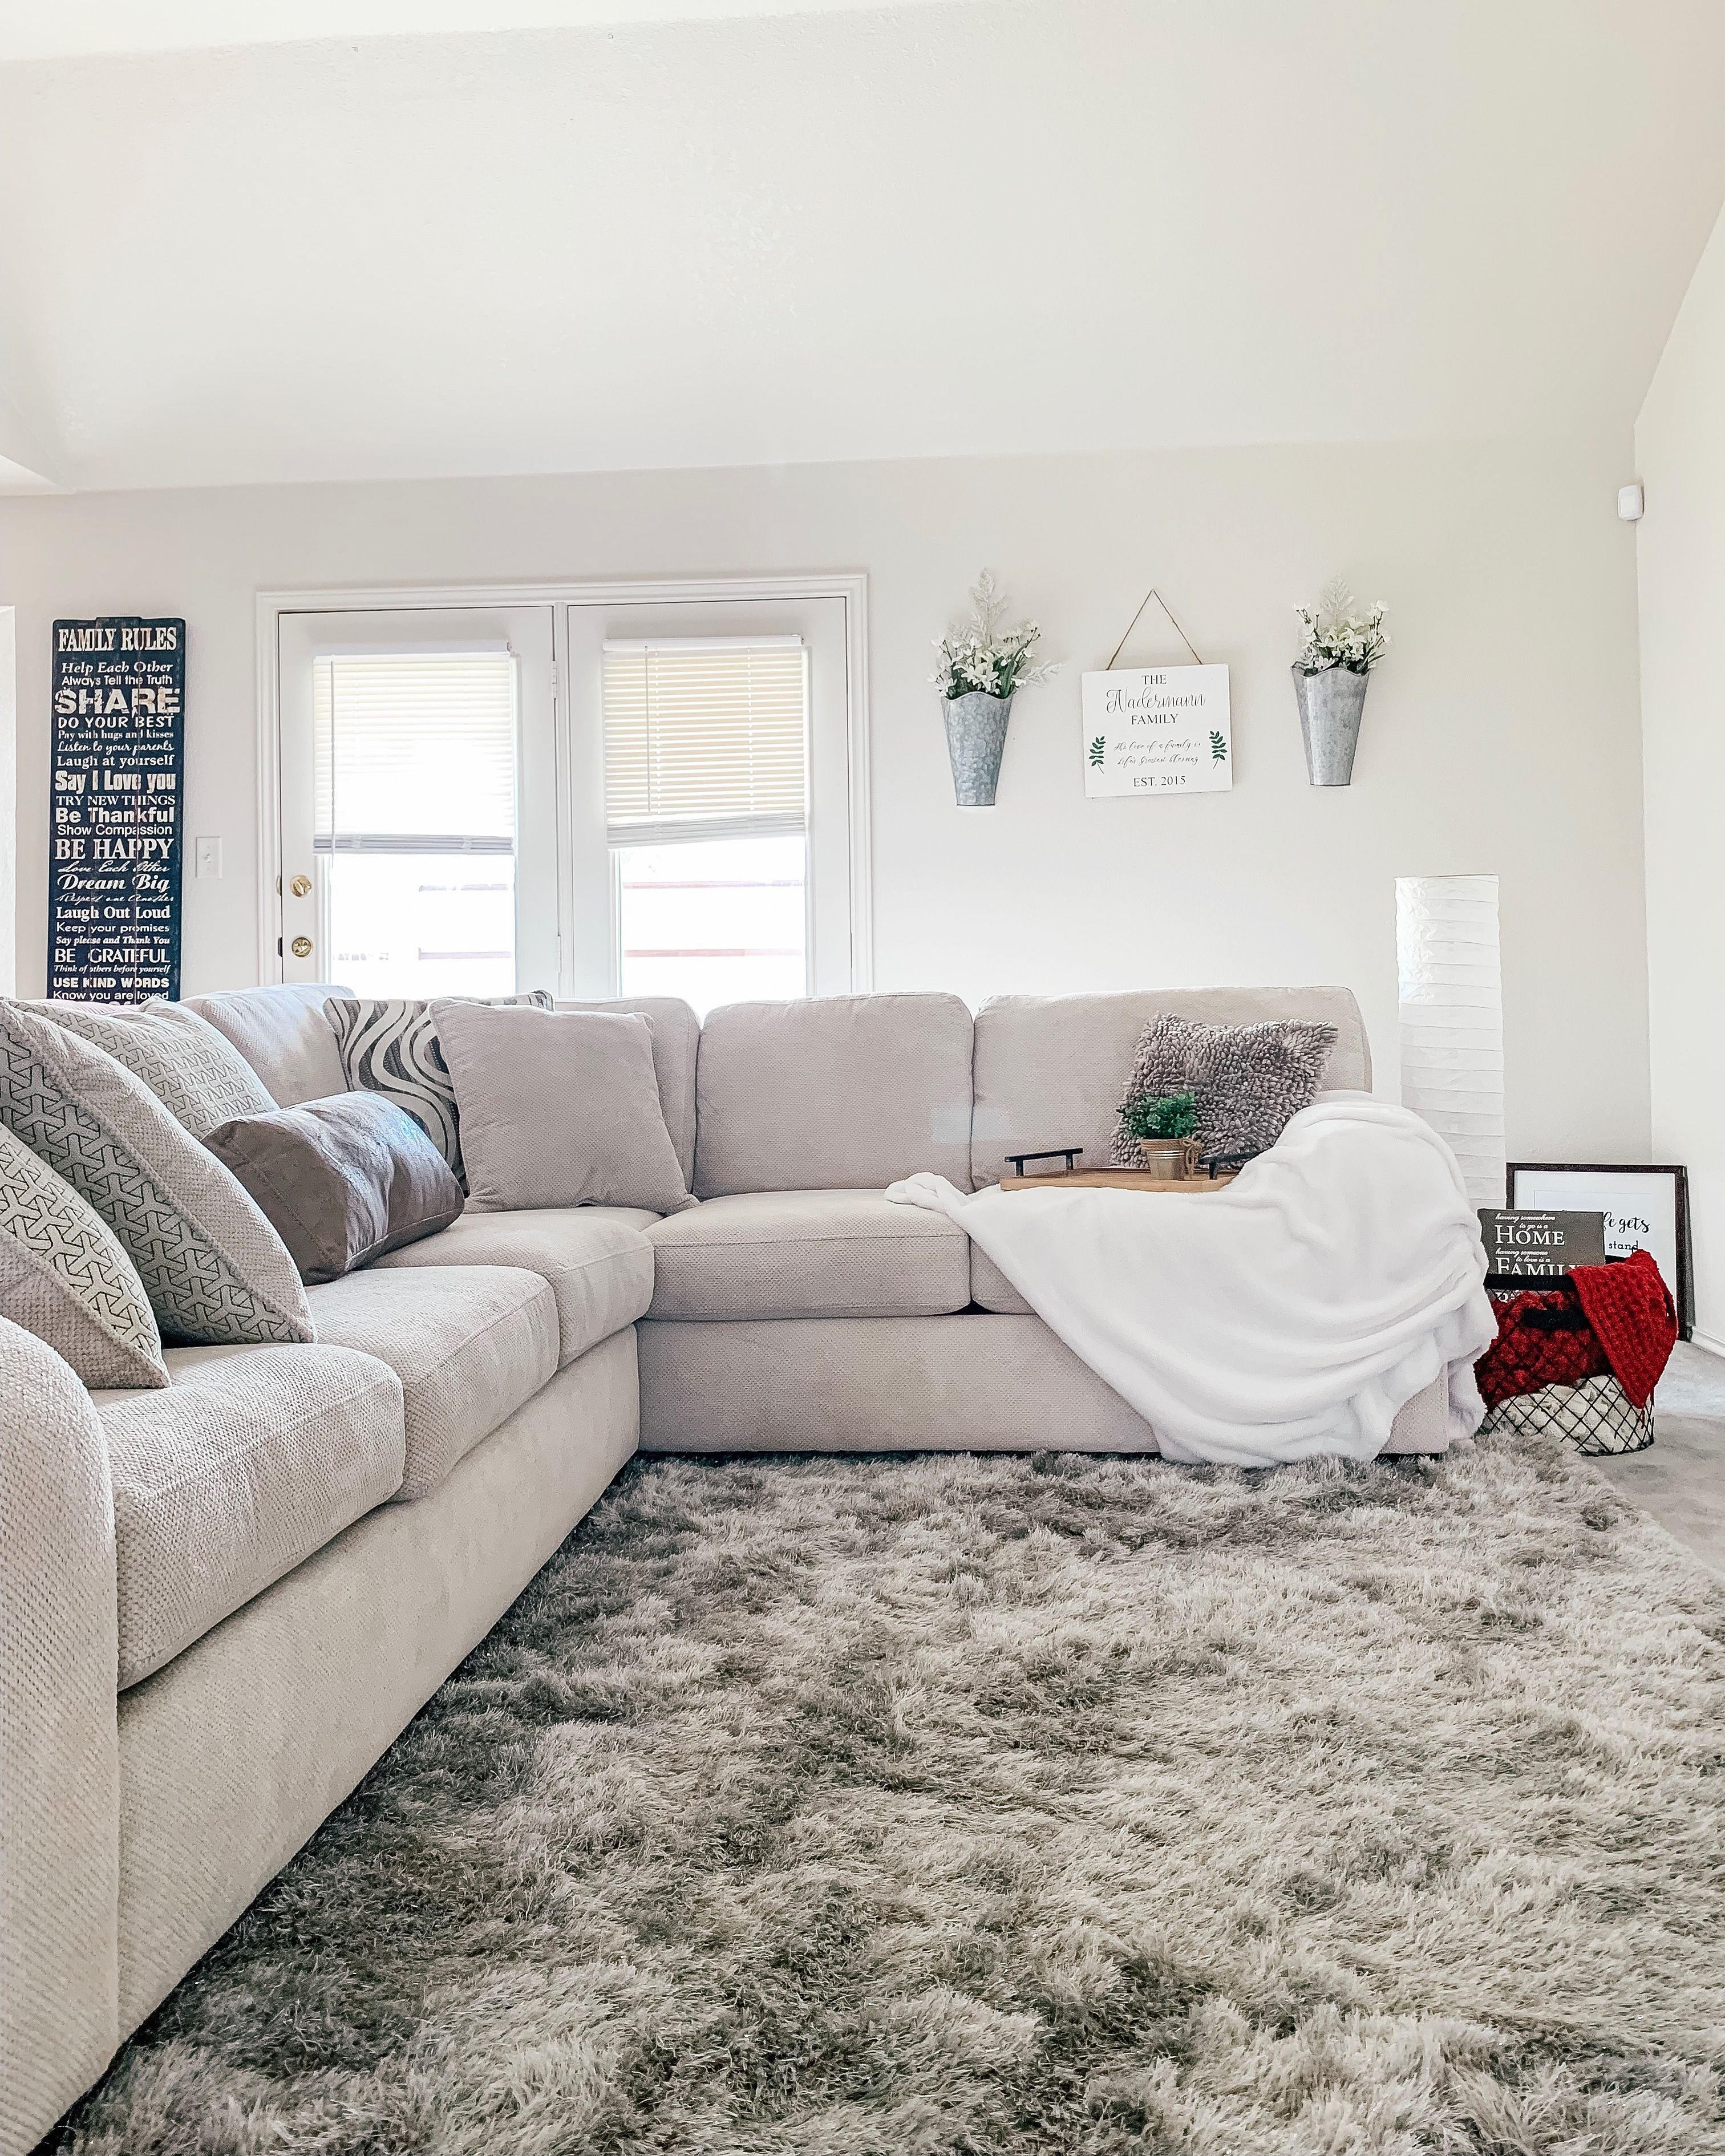 Beige Sectional Couch With Gray Shag Sparkly Rug